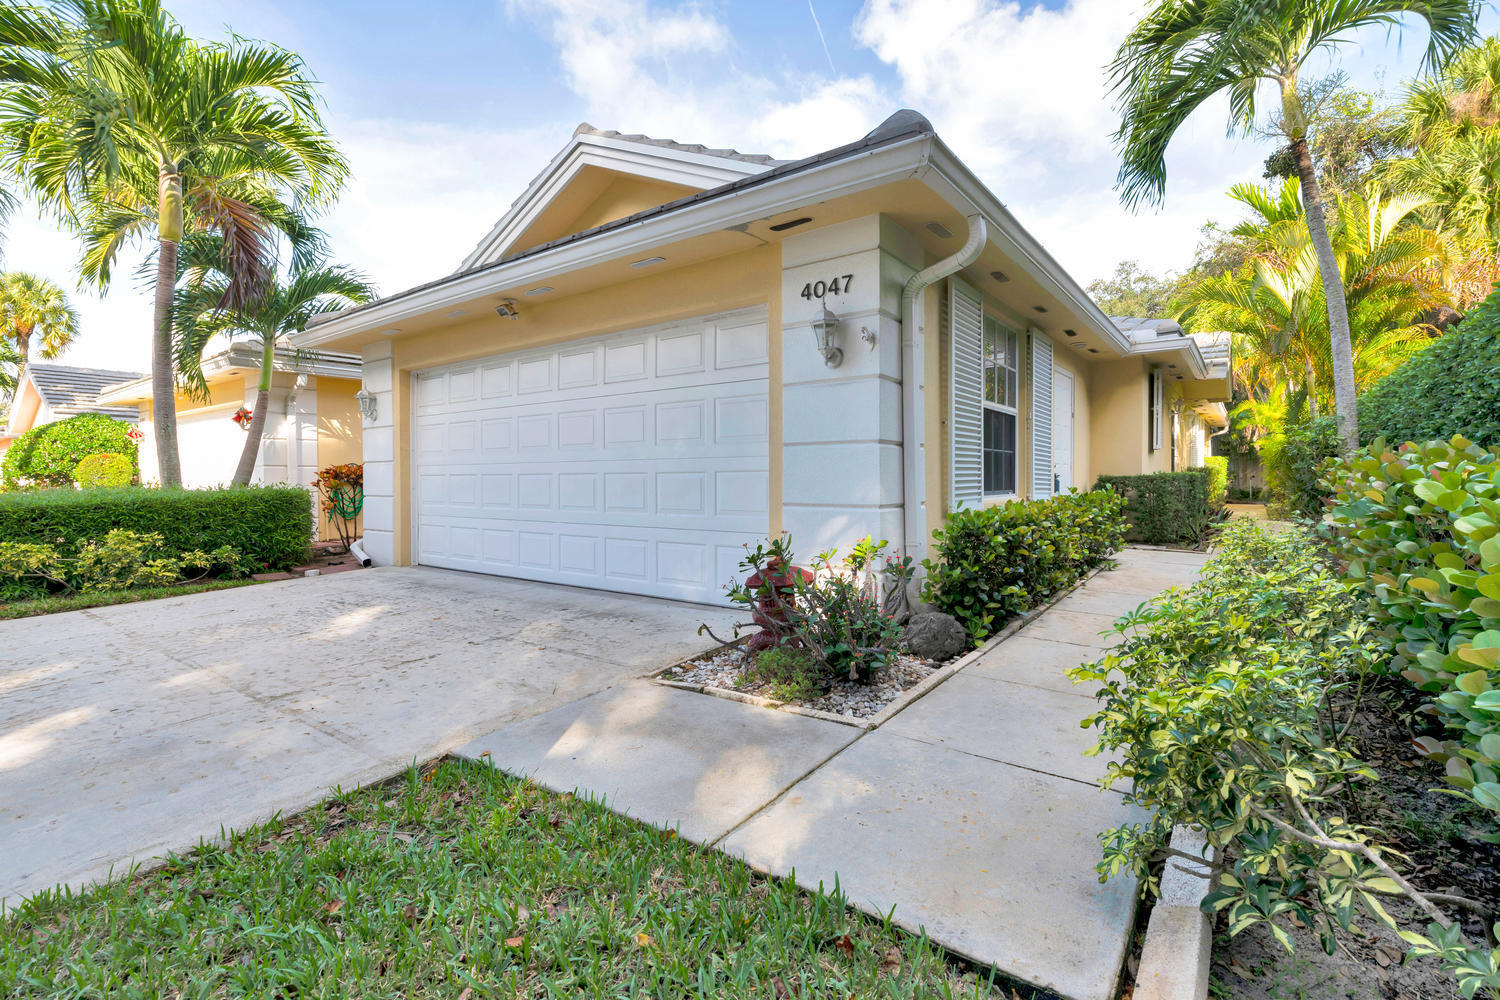 Home for sale in garden oaks south Palm Beach Gardens Florida